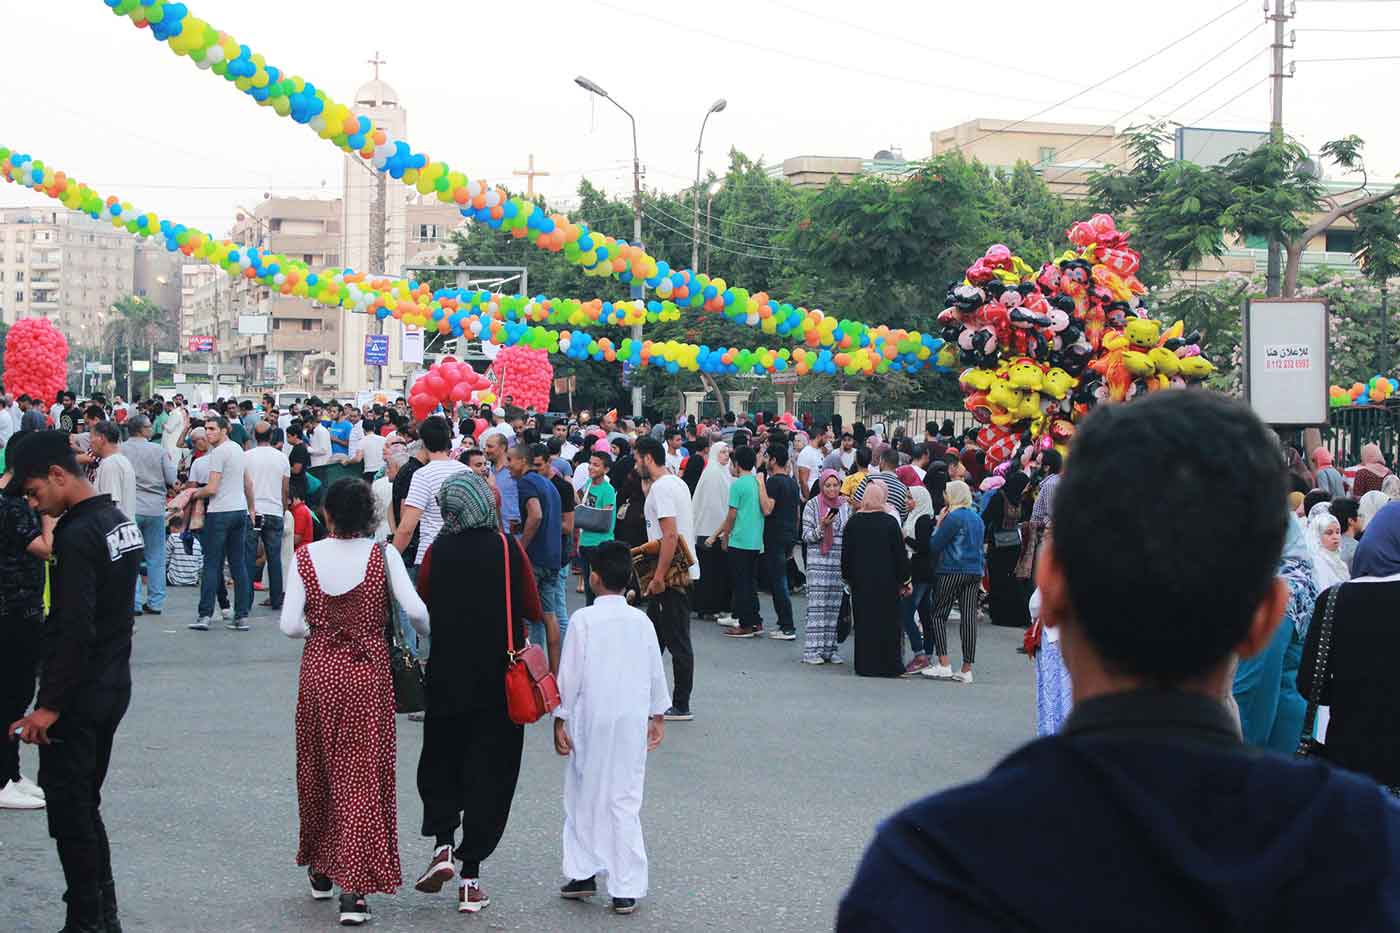 Photo of people walking down the streets of Cairo, Egypt during a festival